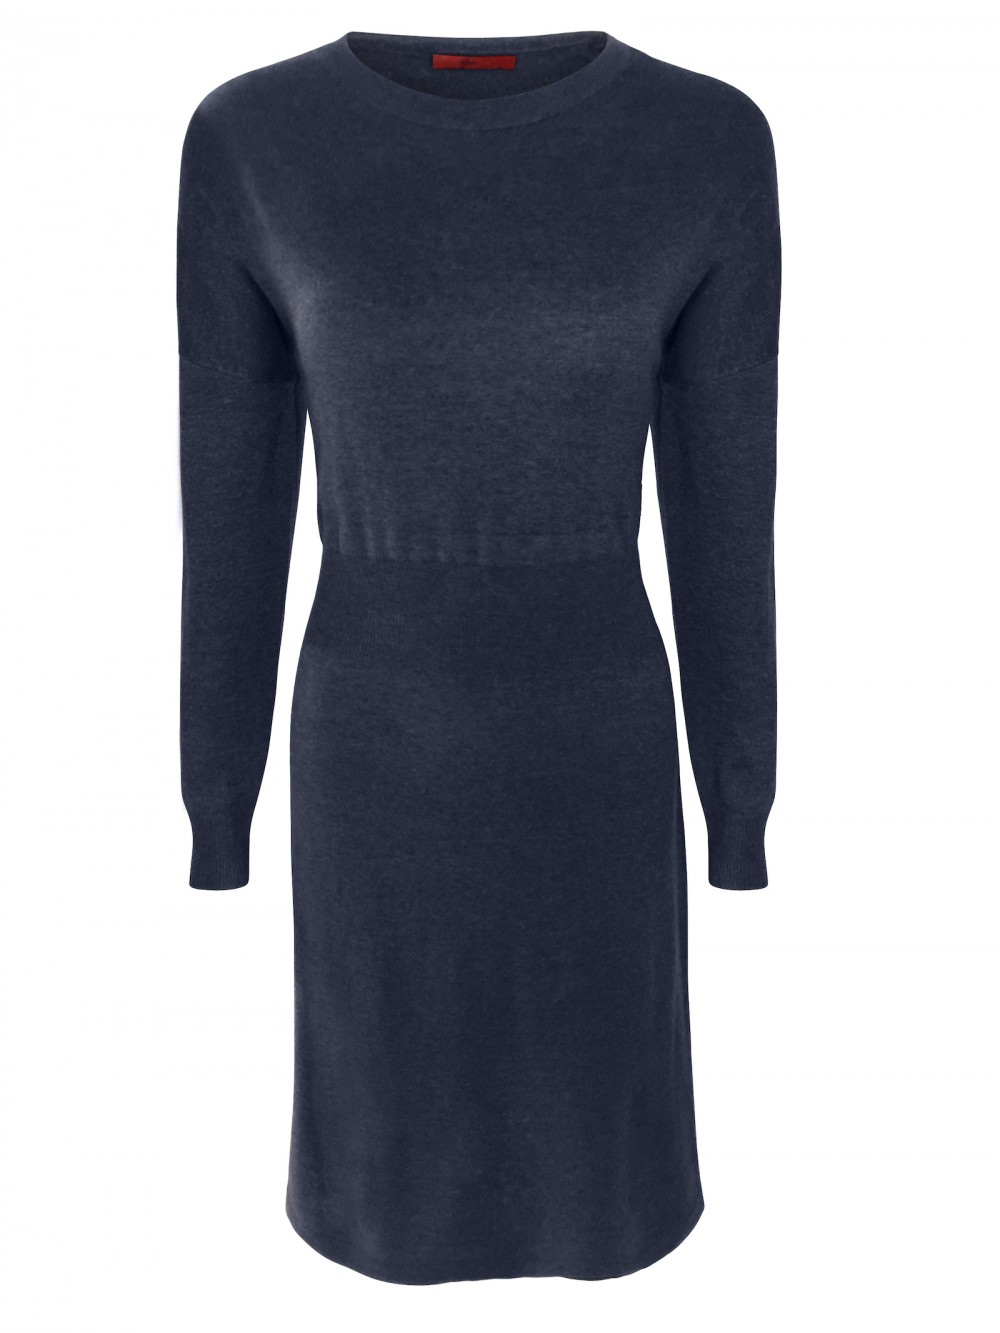 Womens Sweater Dress COCO Blue (S/M)